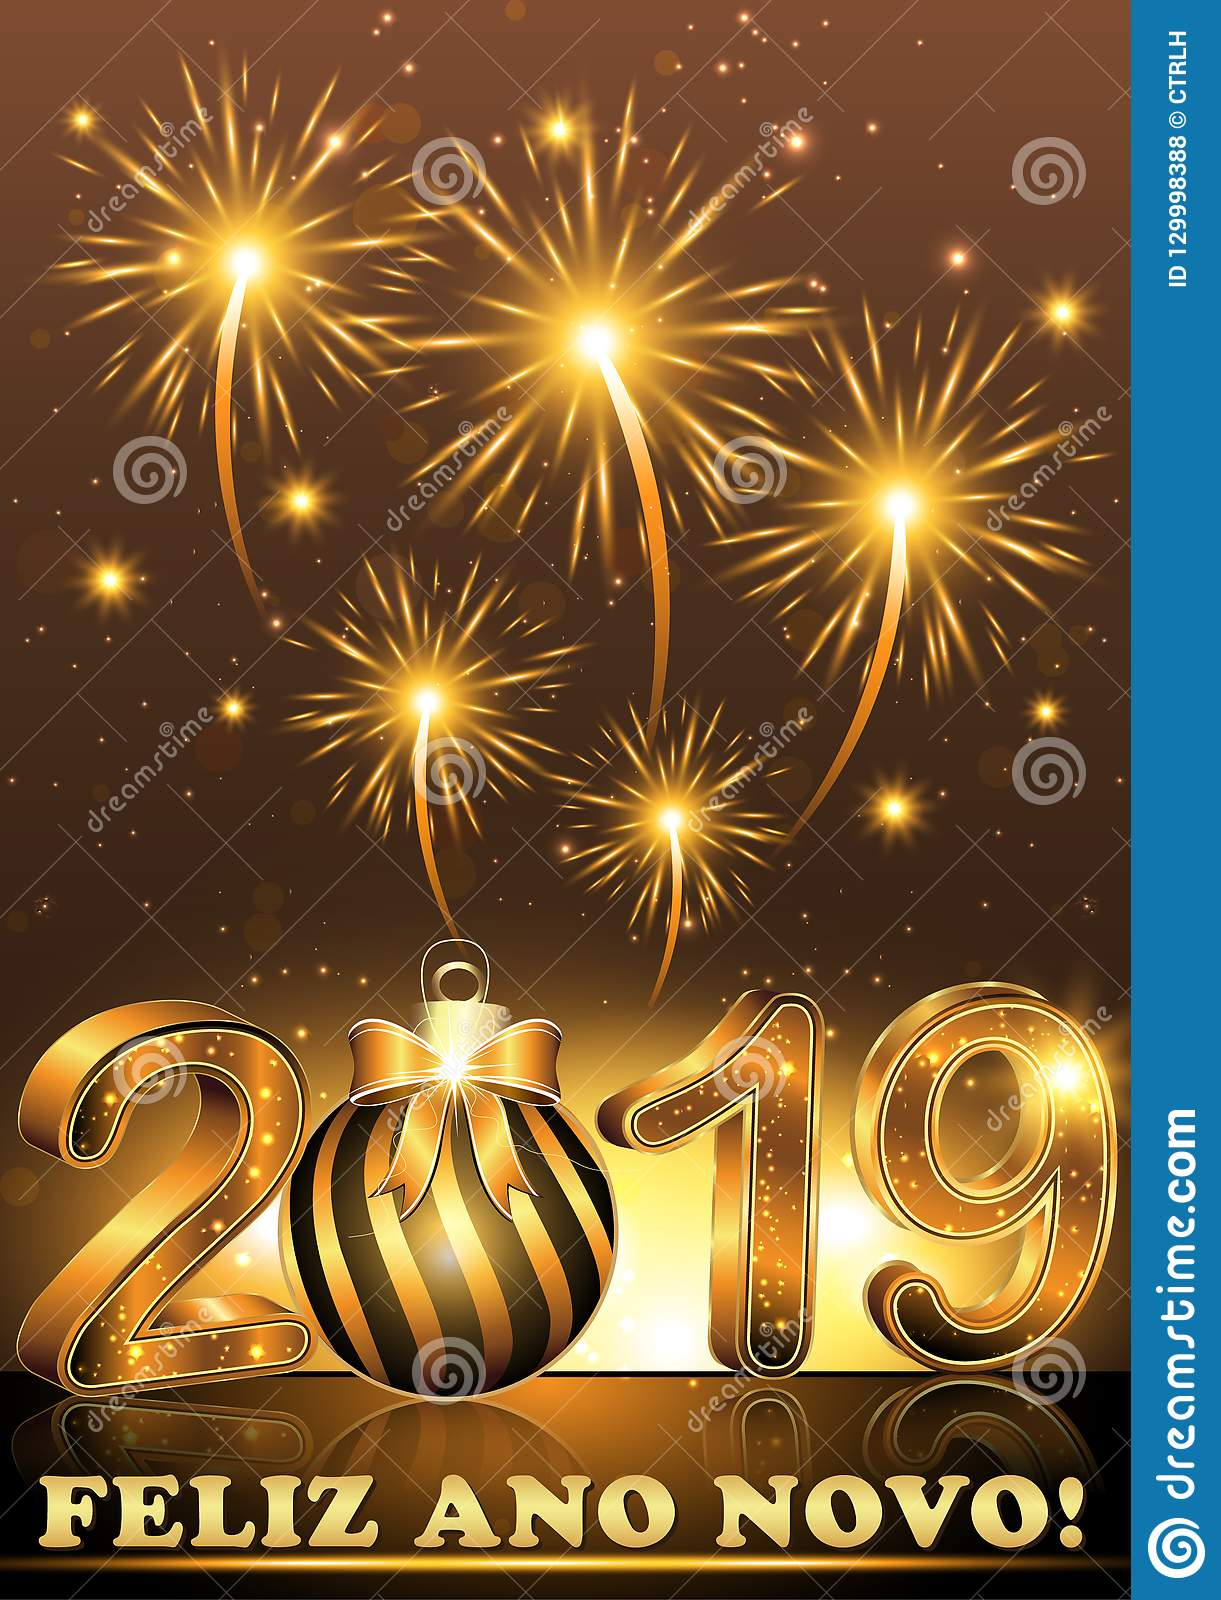 Happy New Year Images 2019 49